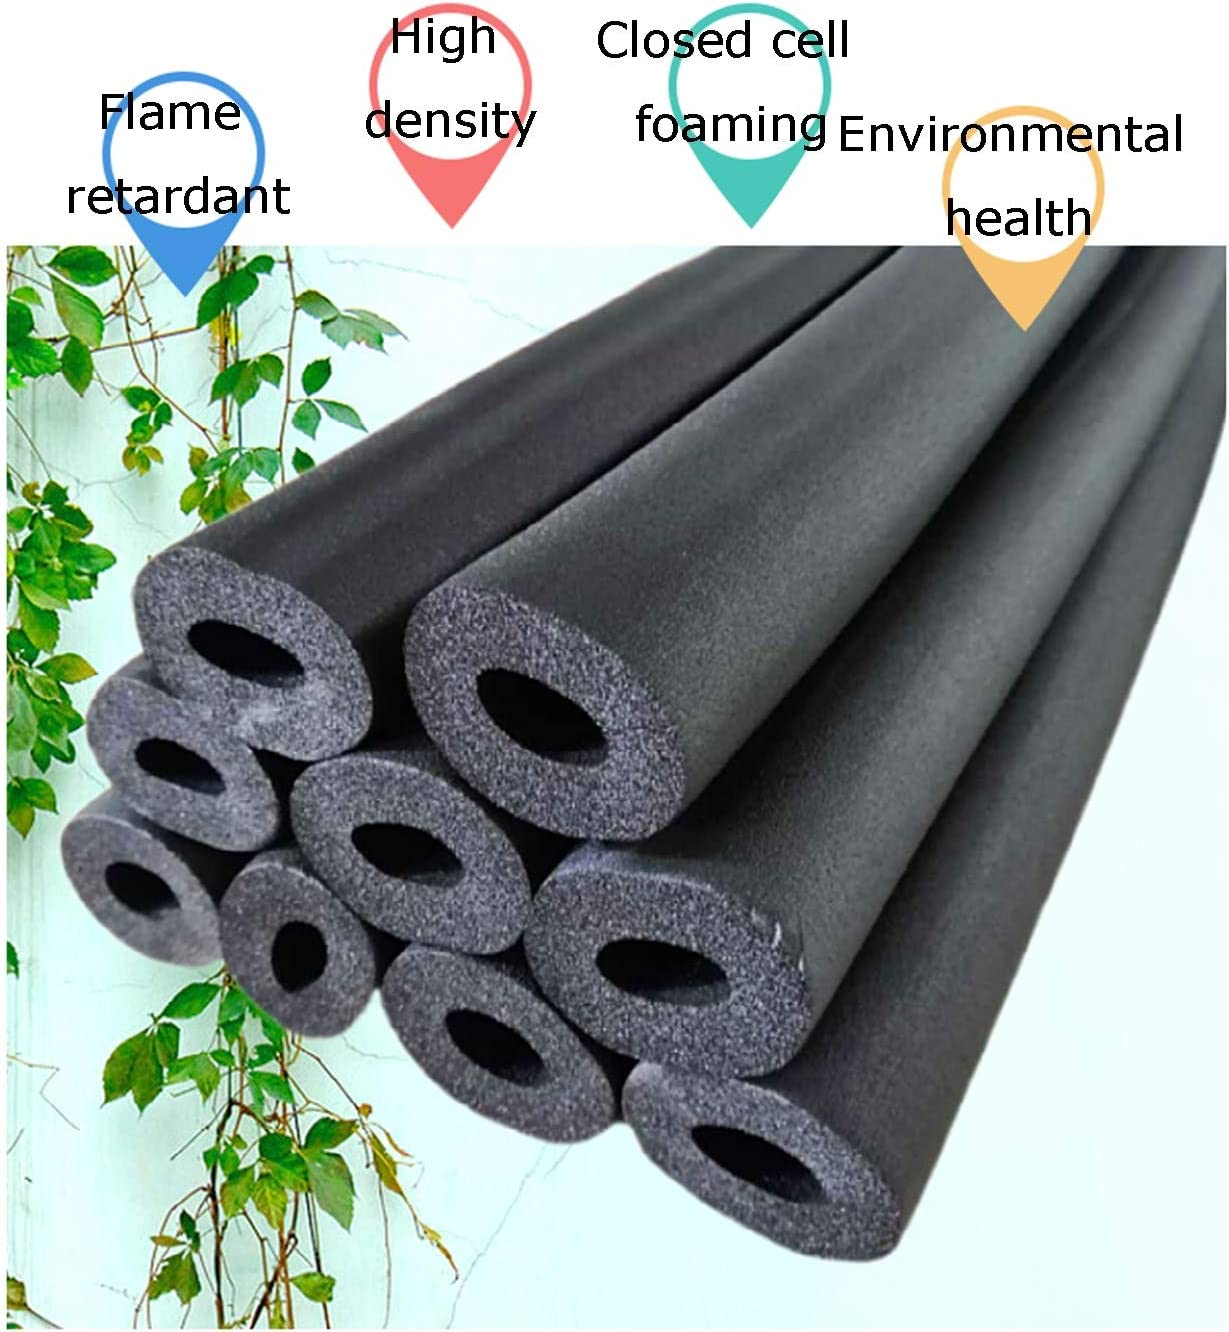 Color : 108mm , Size : Pack of 3 High Density Self-Sealing Tube Pipe Insulation,Rubber Hoses Water and High Temp Resistant,Great for Solar Water Heater Systems,Thick Wall 20mm,Lengths 1.9m,3-Pack